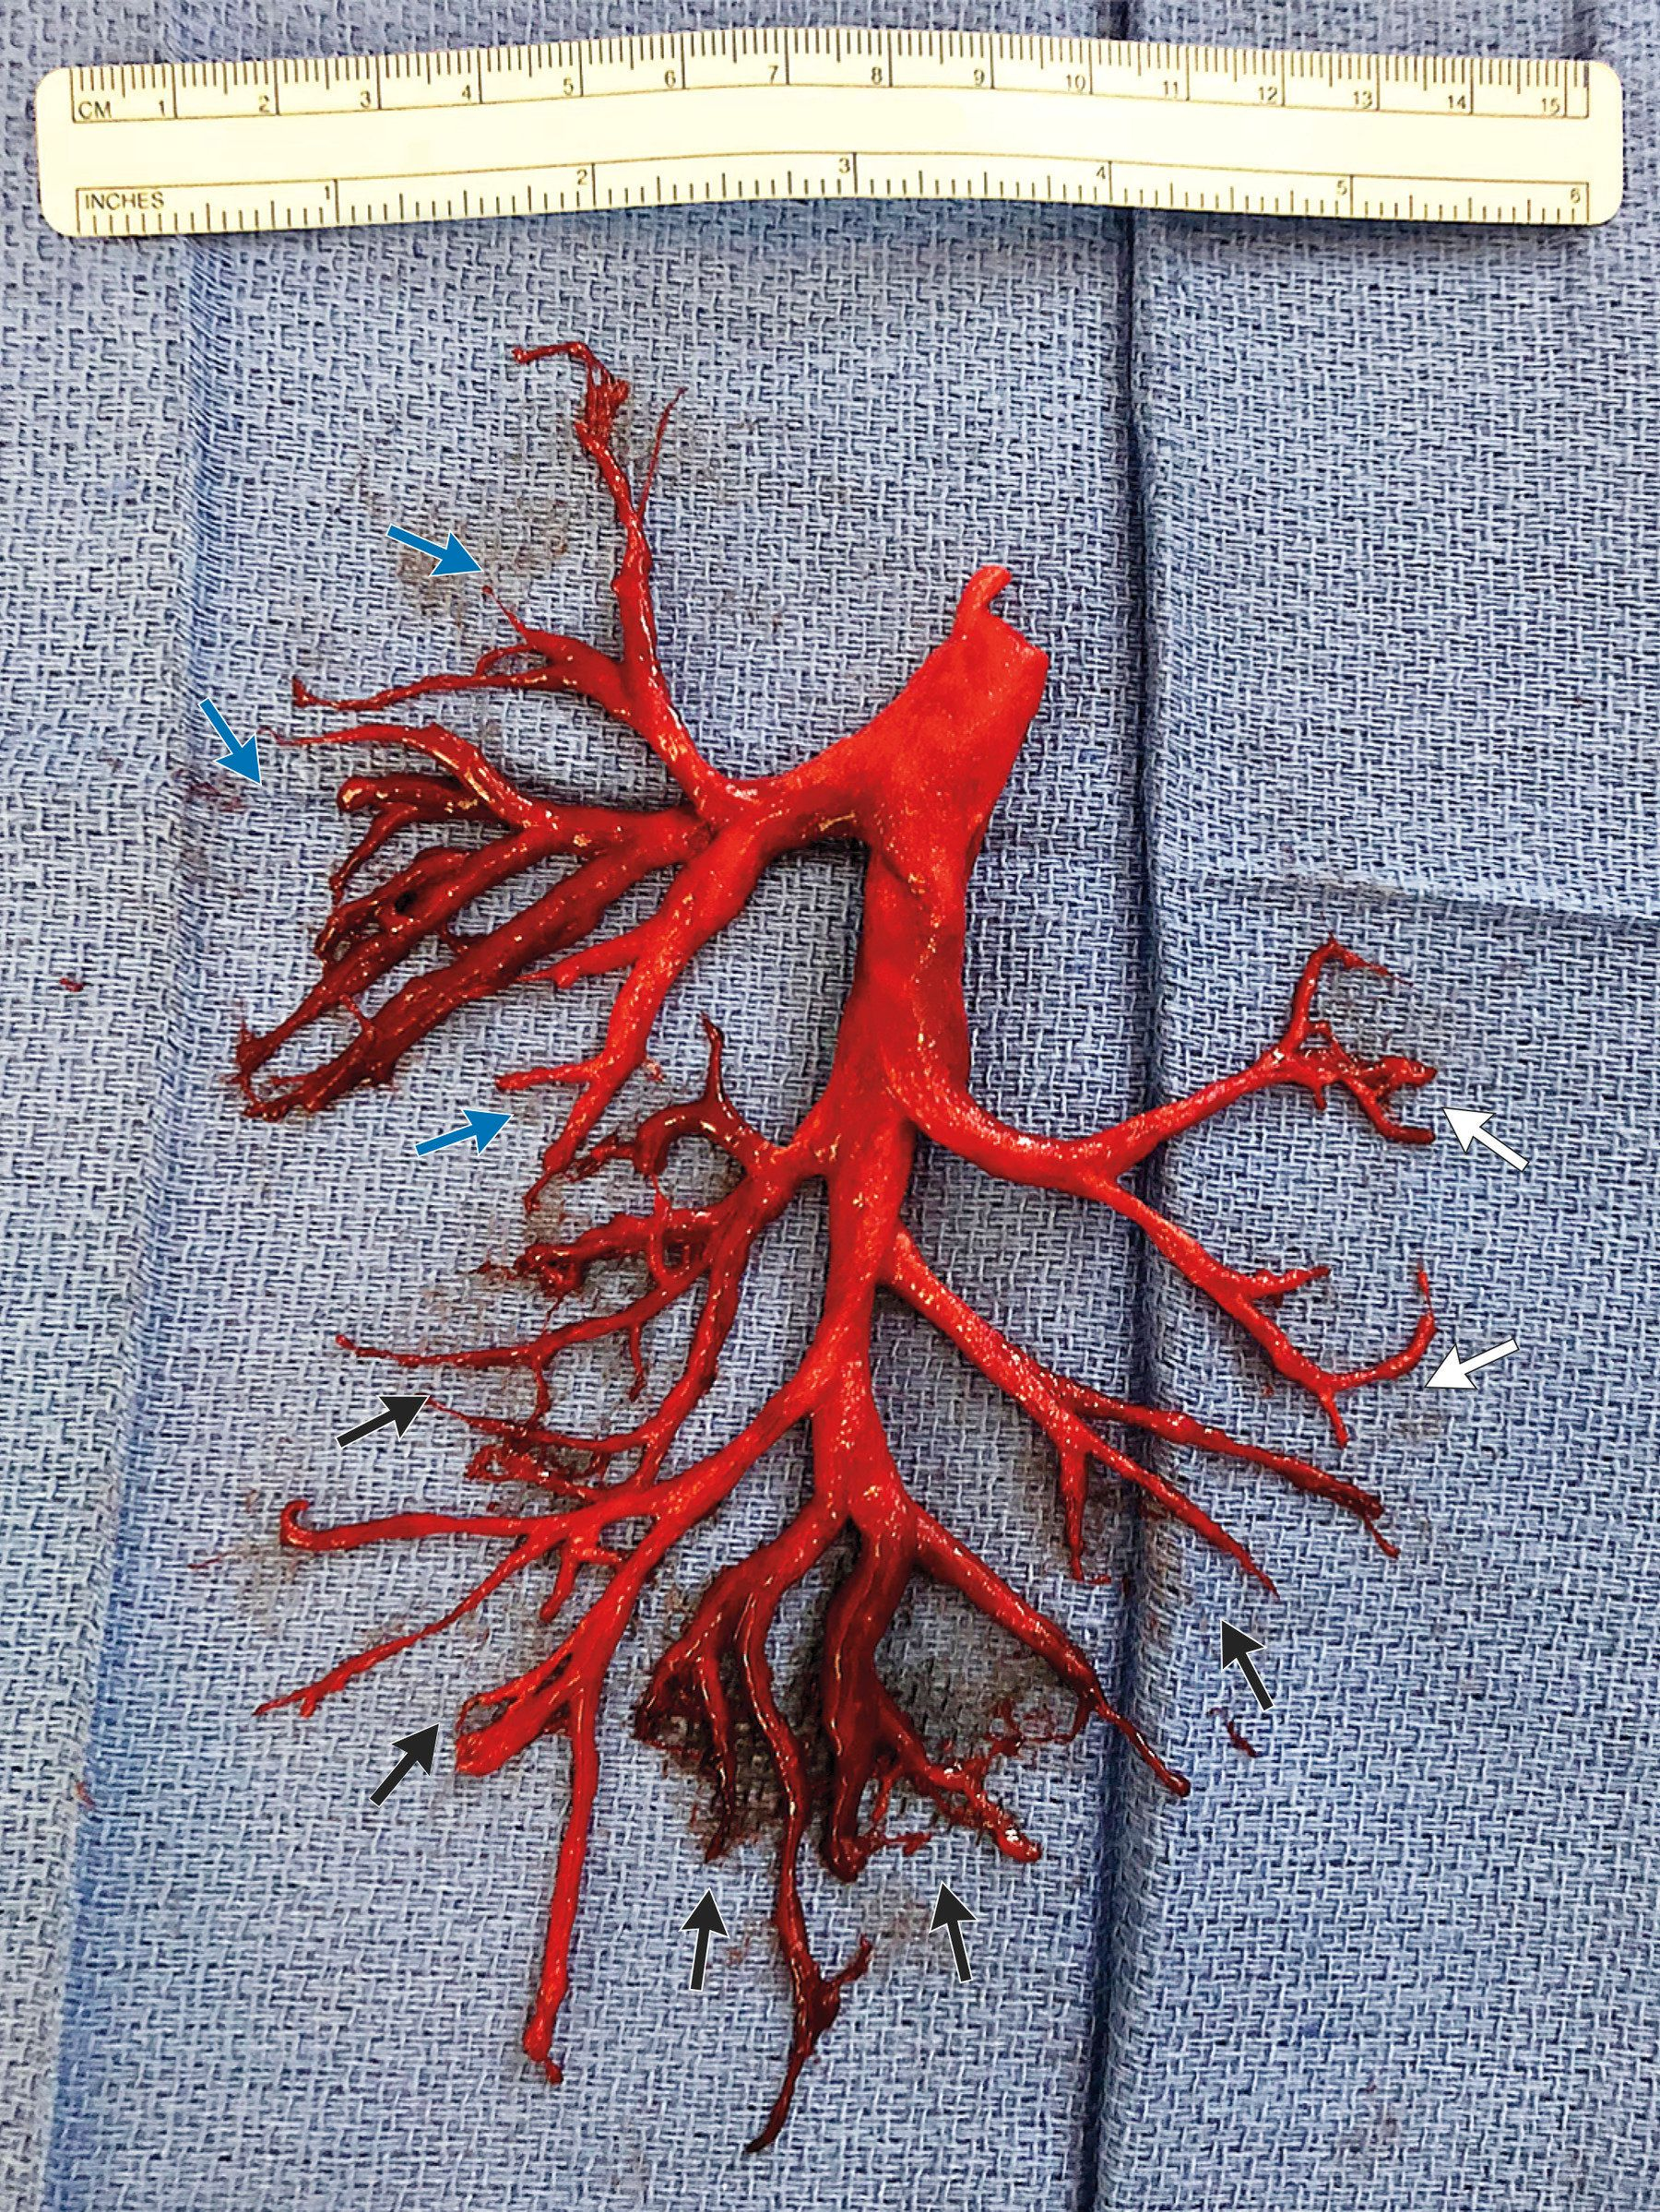 Man Coughed Up Rare Blood Clot That Is The Exact Shape Of Lung